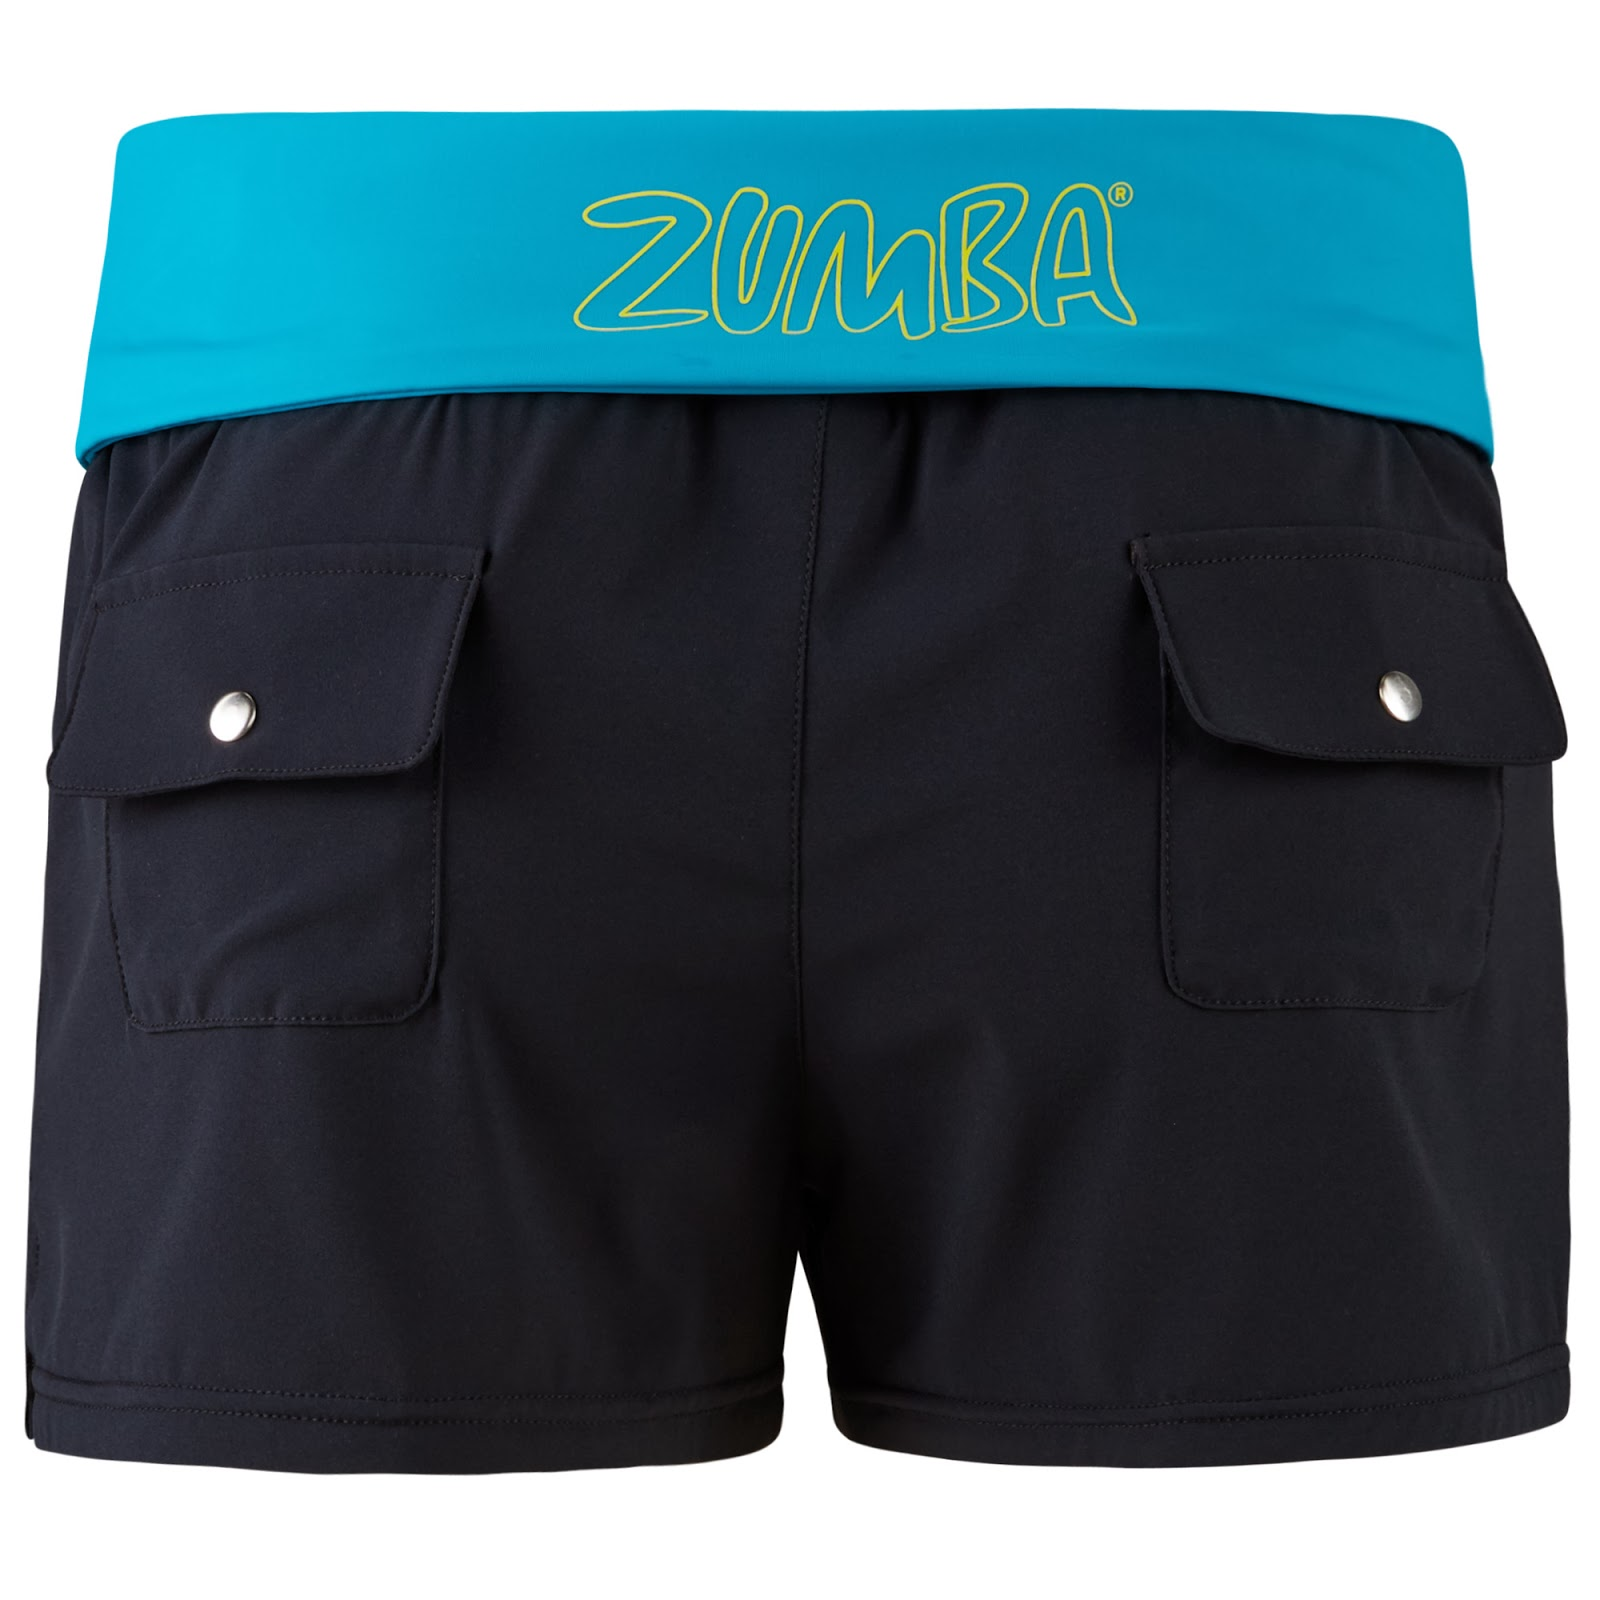 http://www.zumba.com/en-US/store-zin/US/product/craveworthy-board-short?color=Black